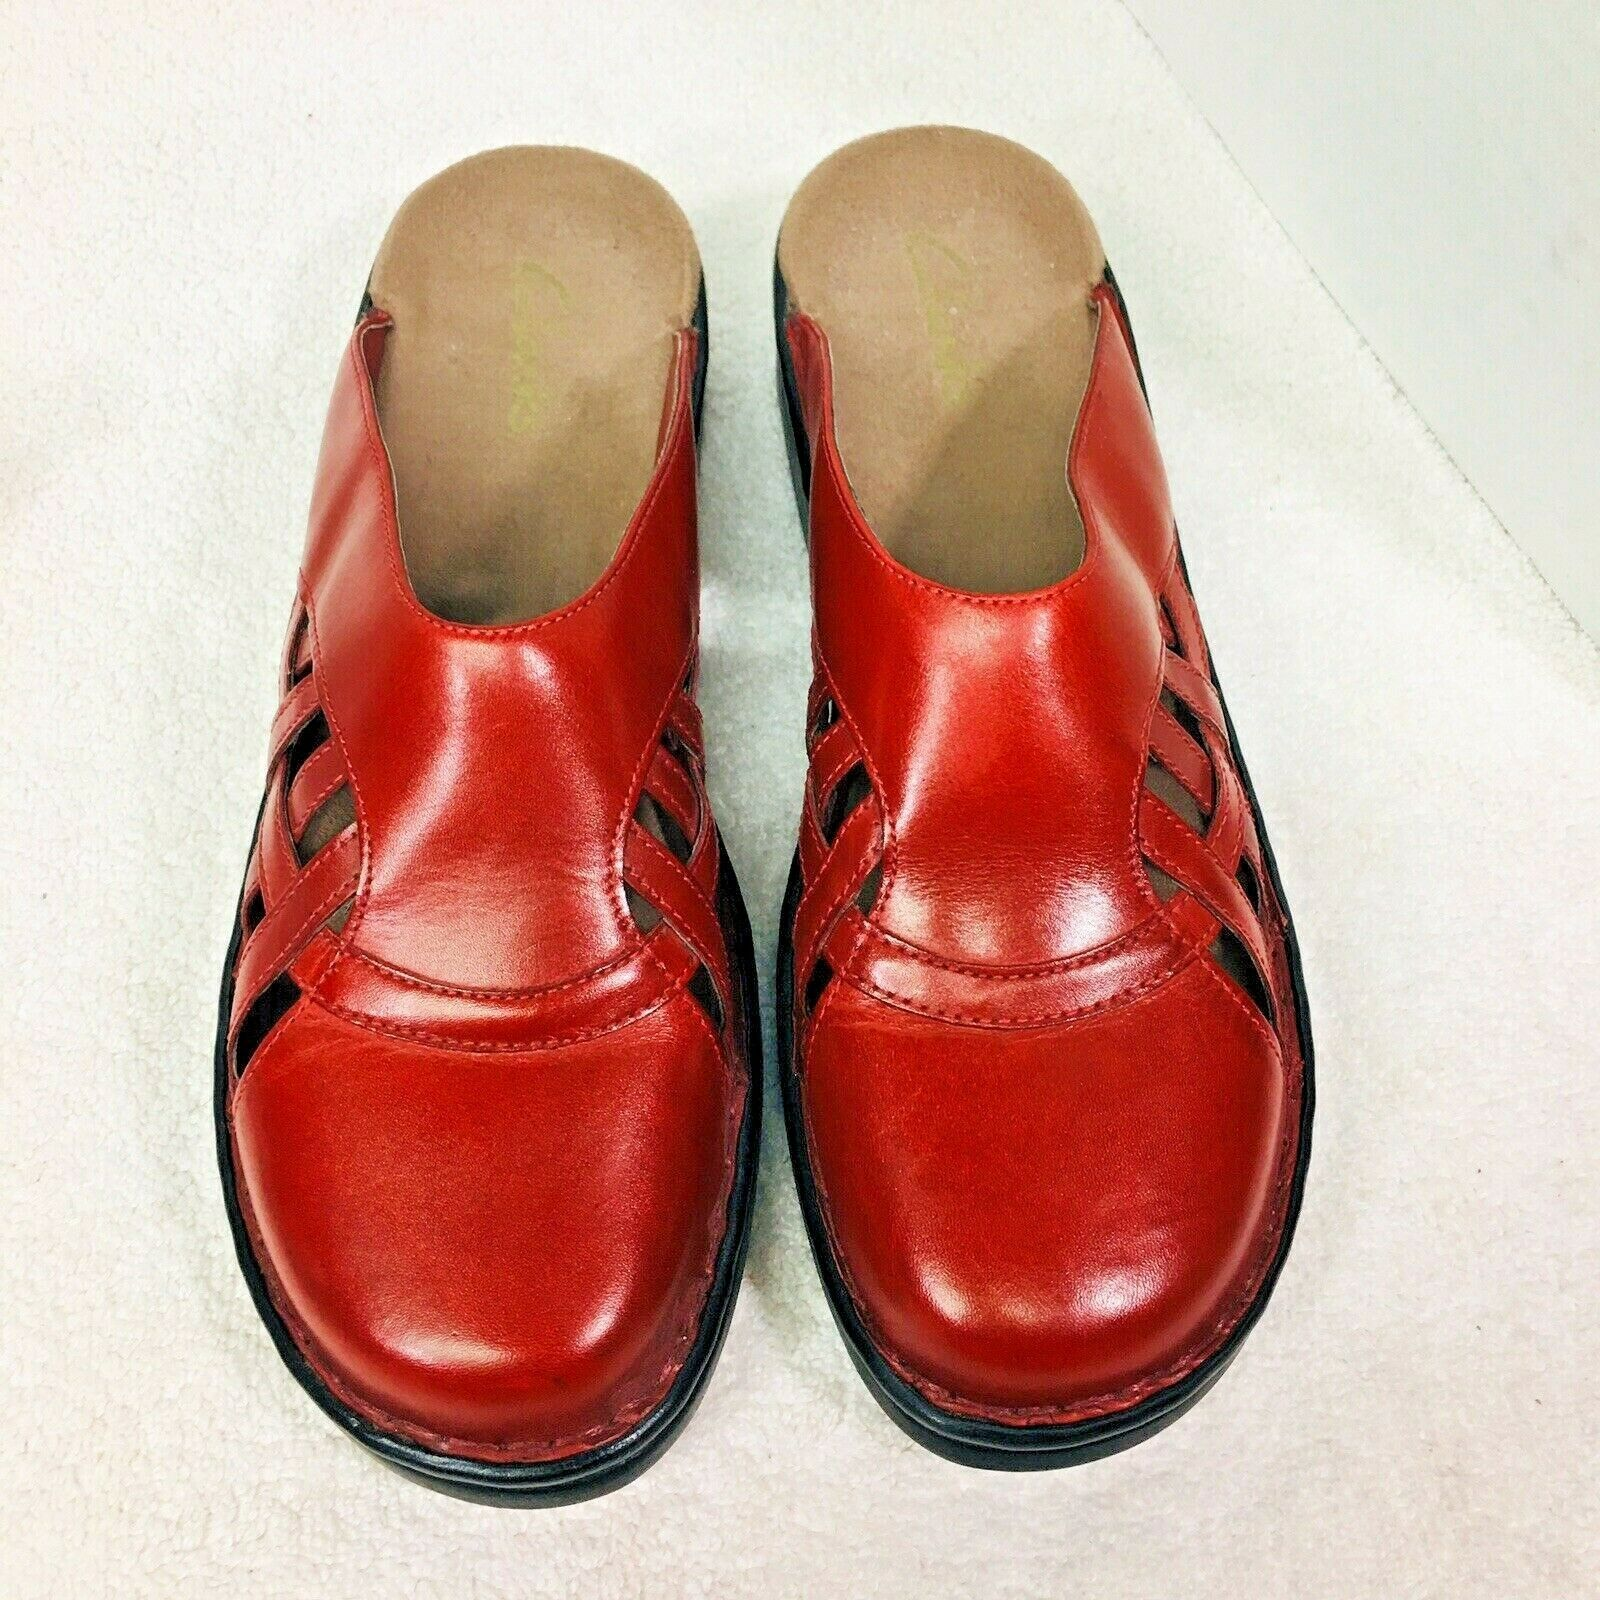 Primary image for Clarks Shoes Red Leather Slip On Side Woven Detail  New  No Box 11W